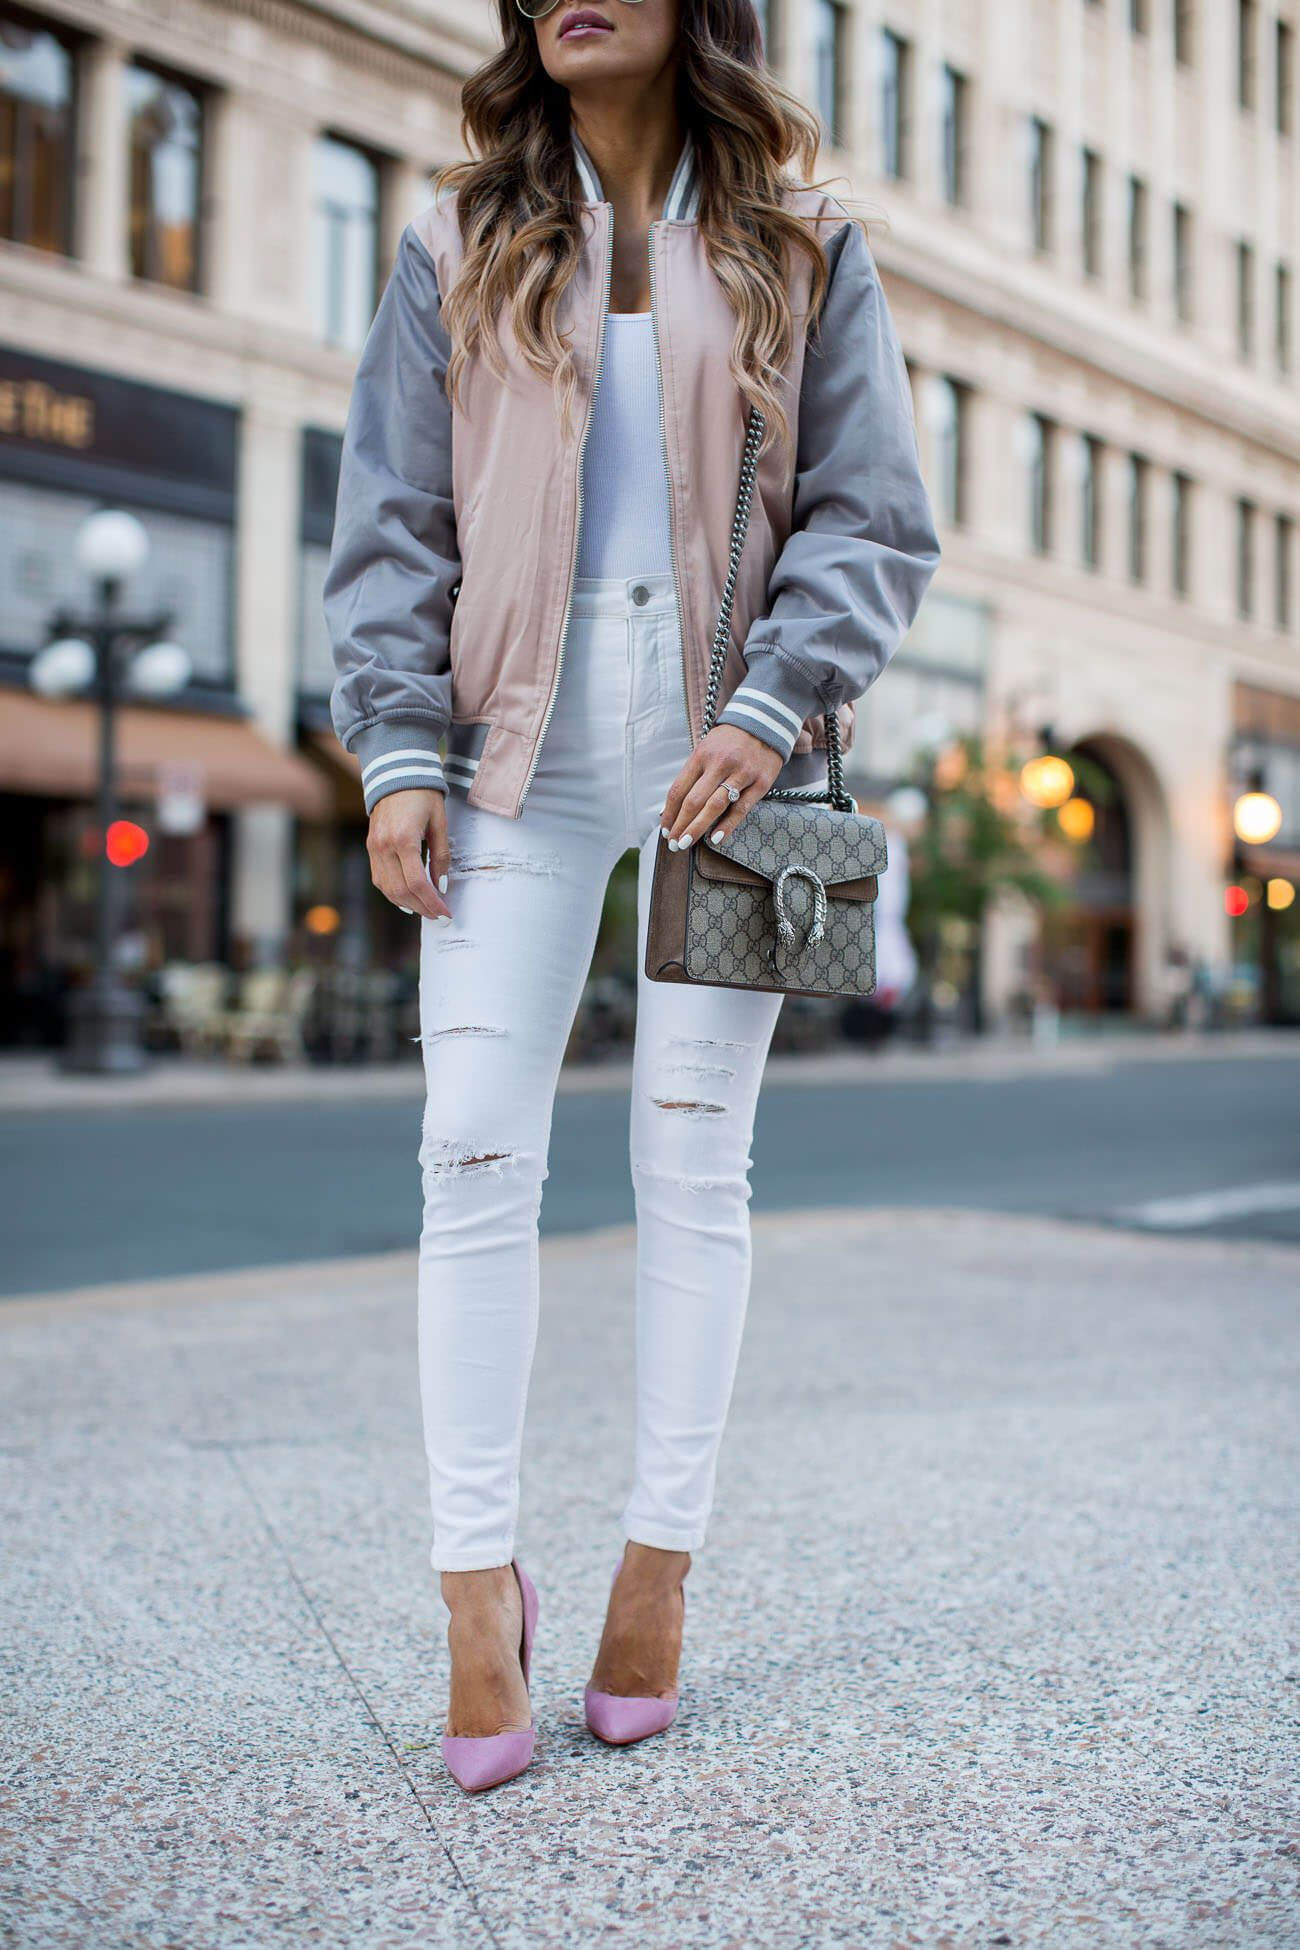 1c0800258115 fashion blogger mia mia mine in topshop white jeans and christian louboutin  pink so kate heels